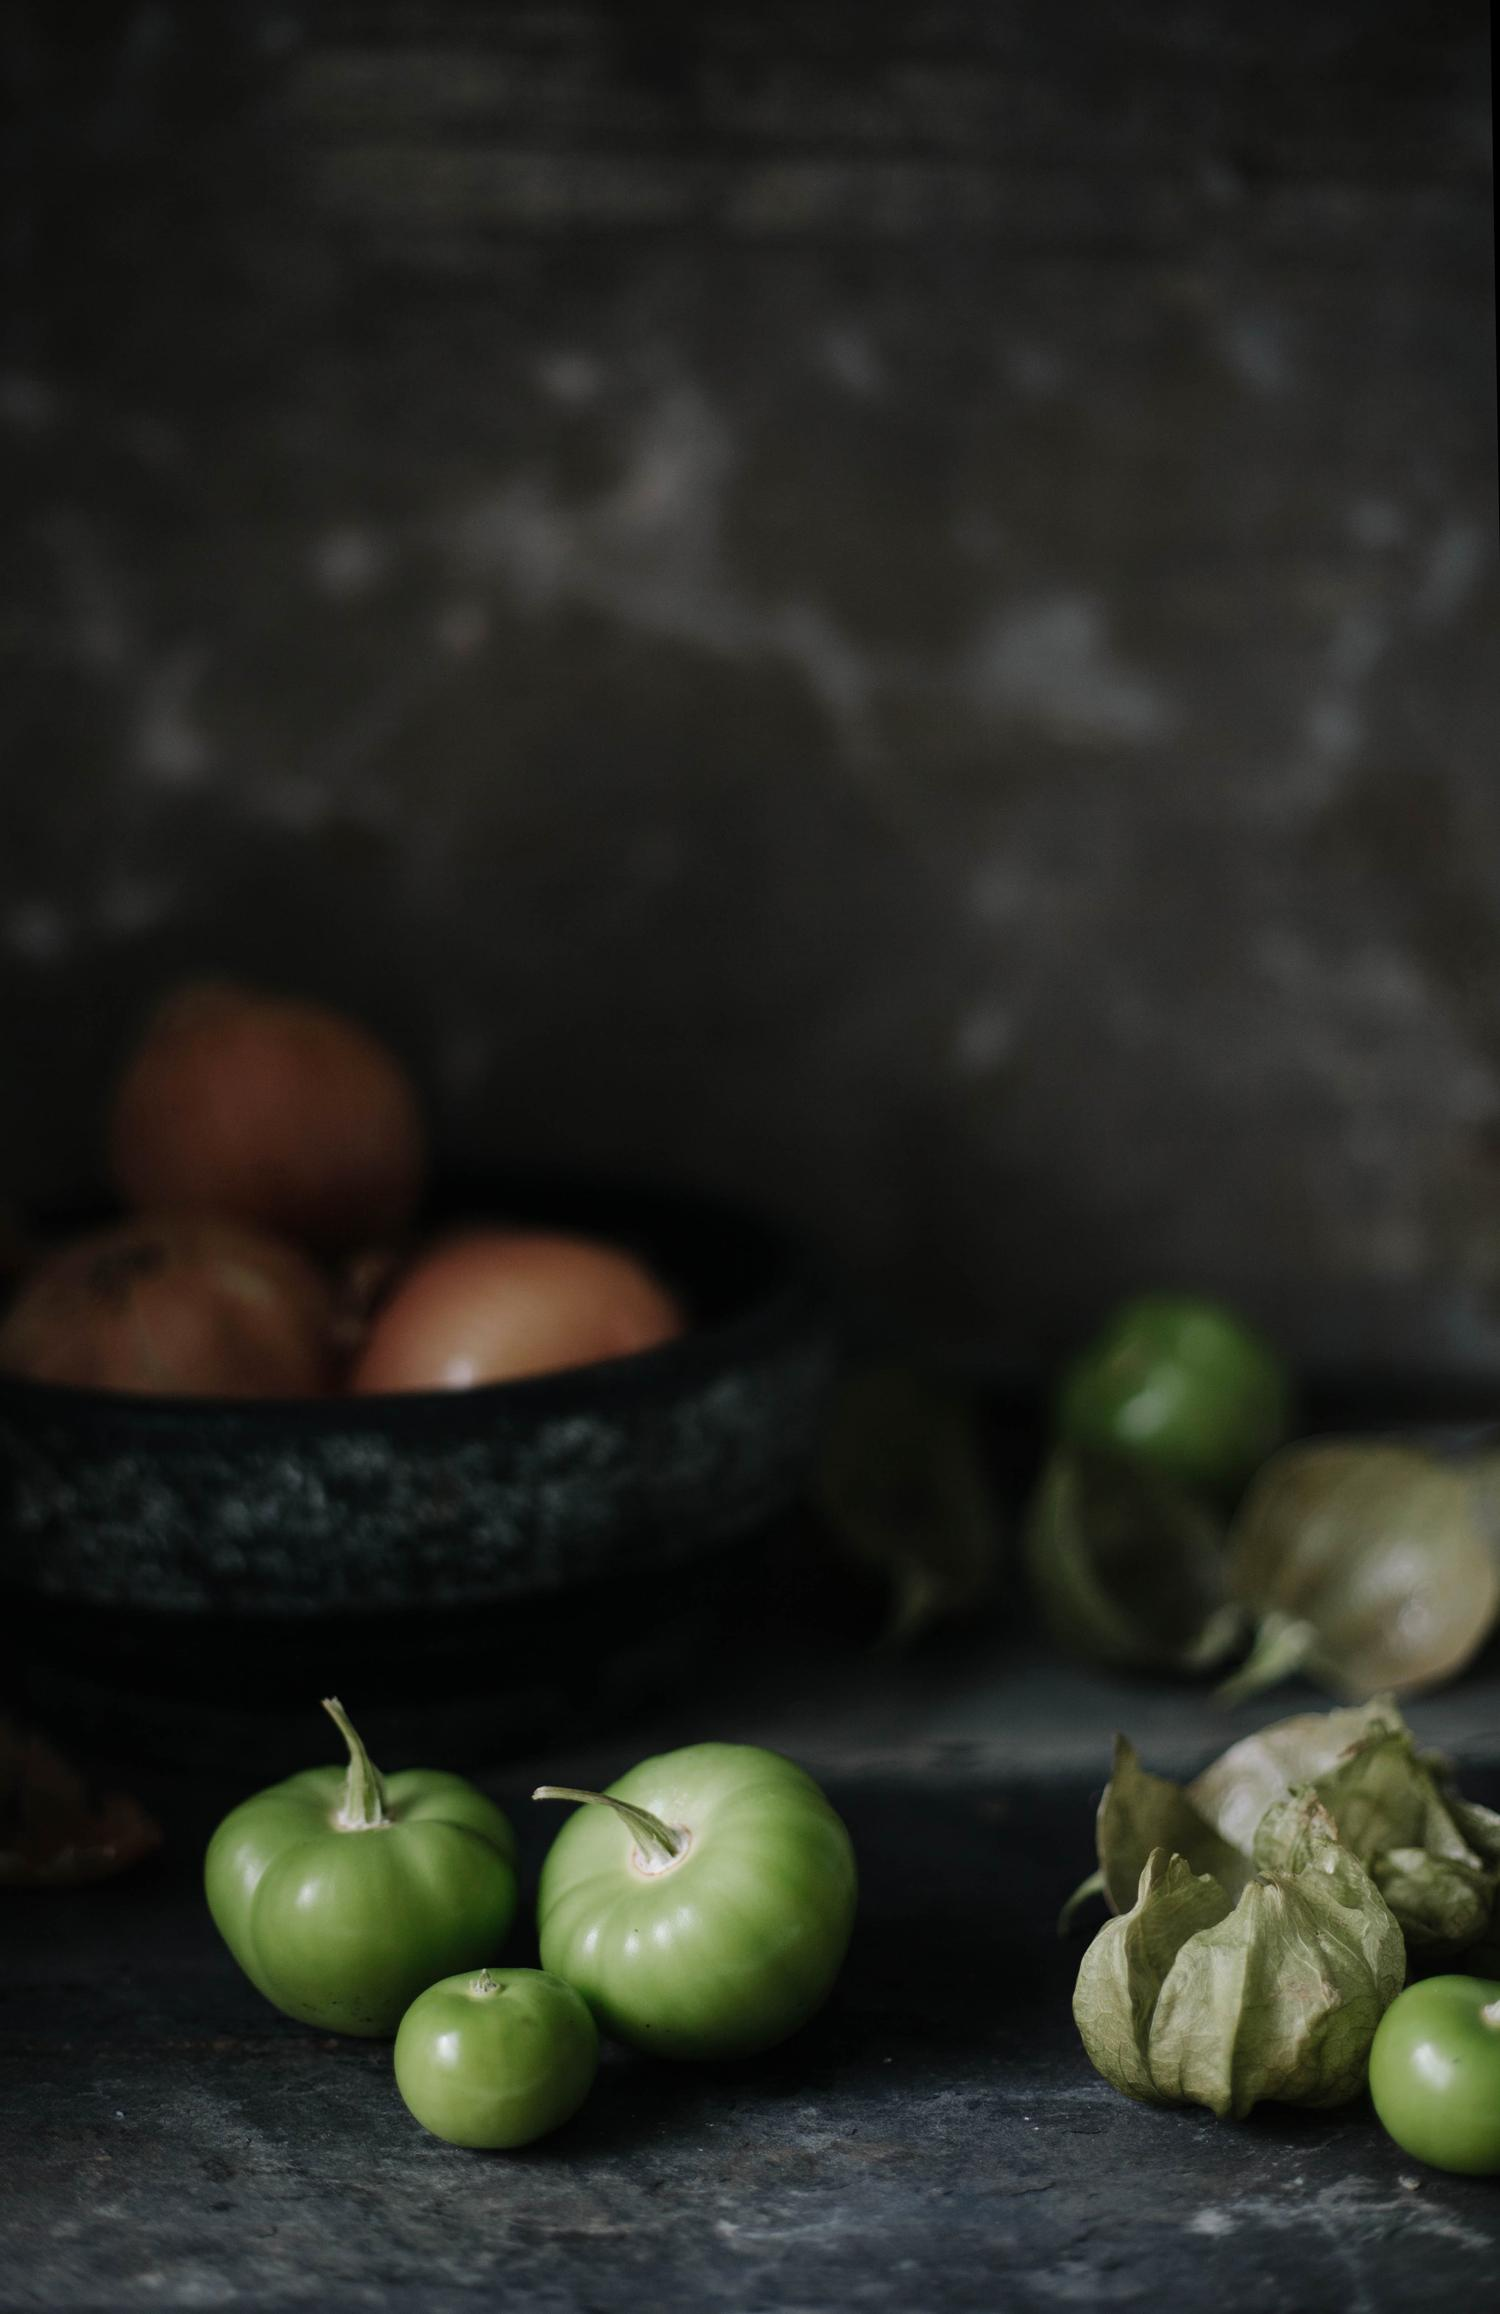 Apples and tomatillos - image 4 - student project